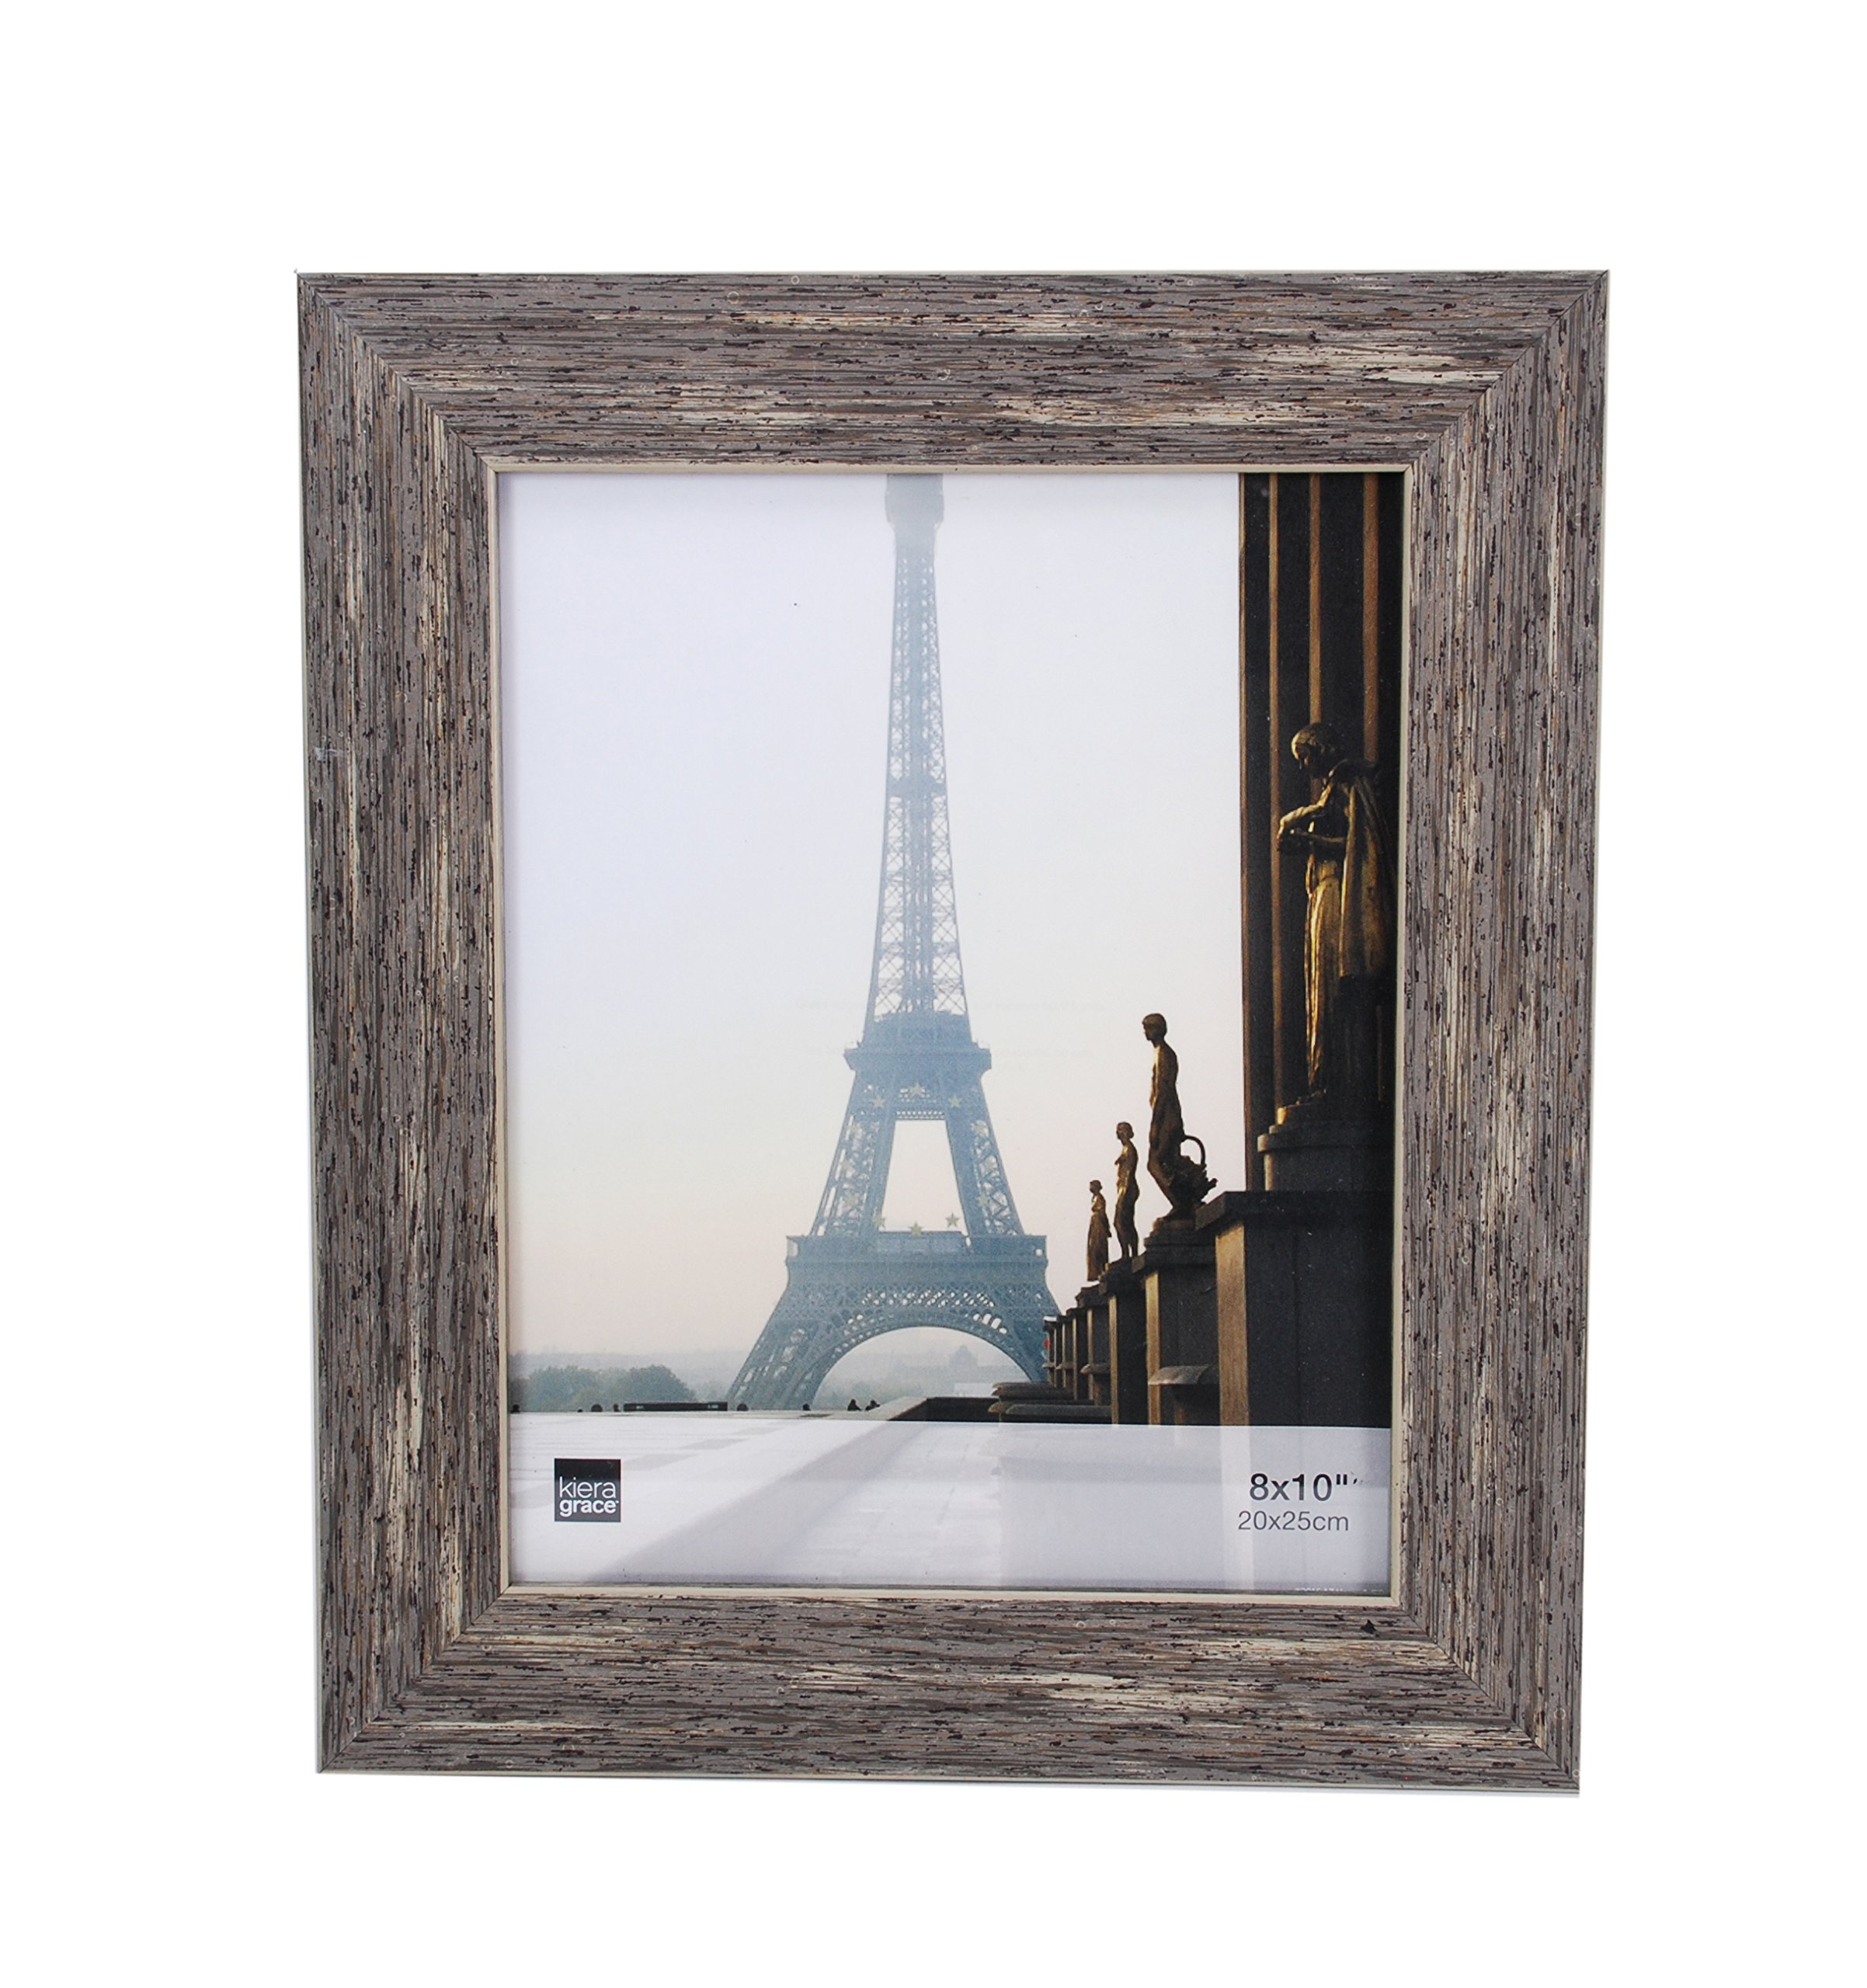 kieragrace Emery Picture Frame, 8 by 10-Inch, Plastic Resin, Weathered Grey Reclaimed Wood Finish by kieragrace